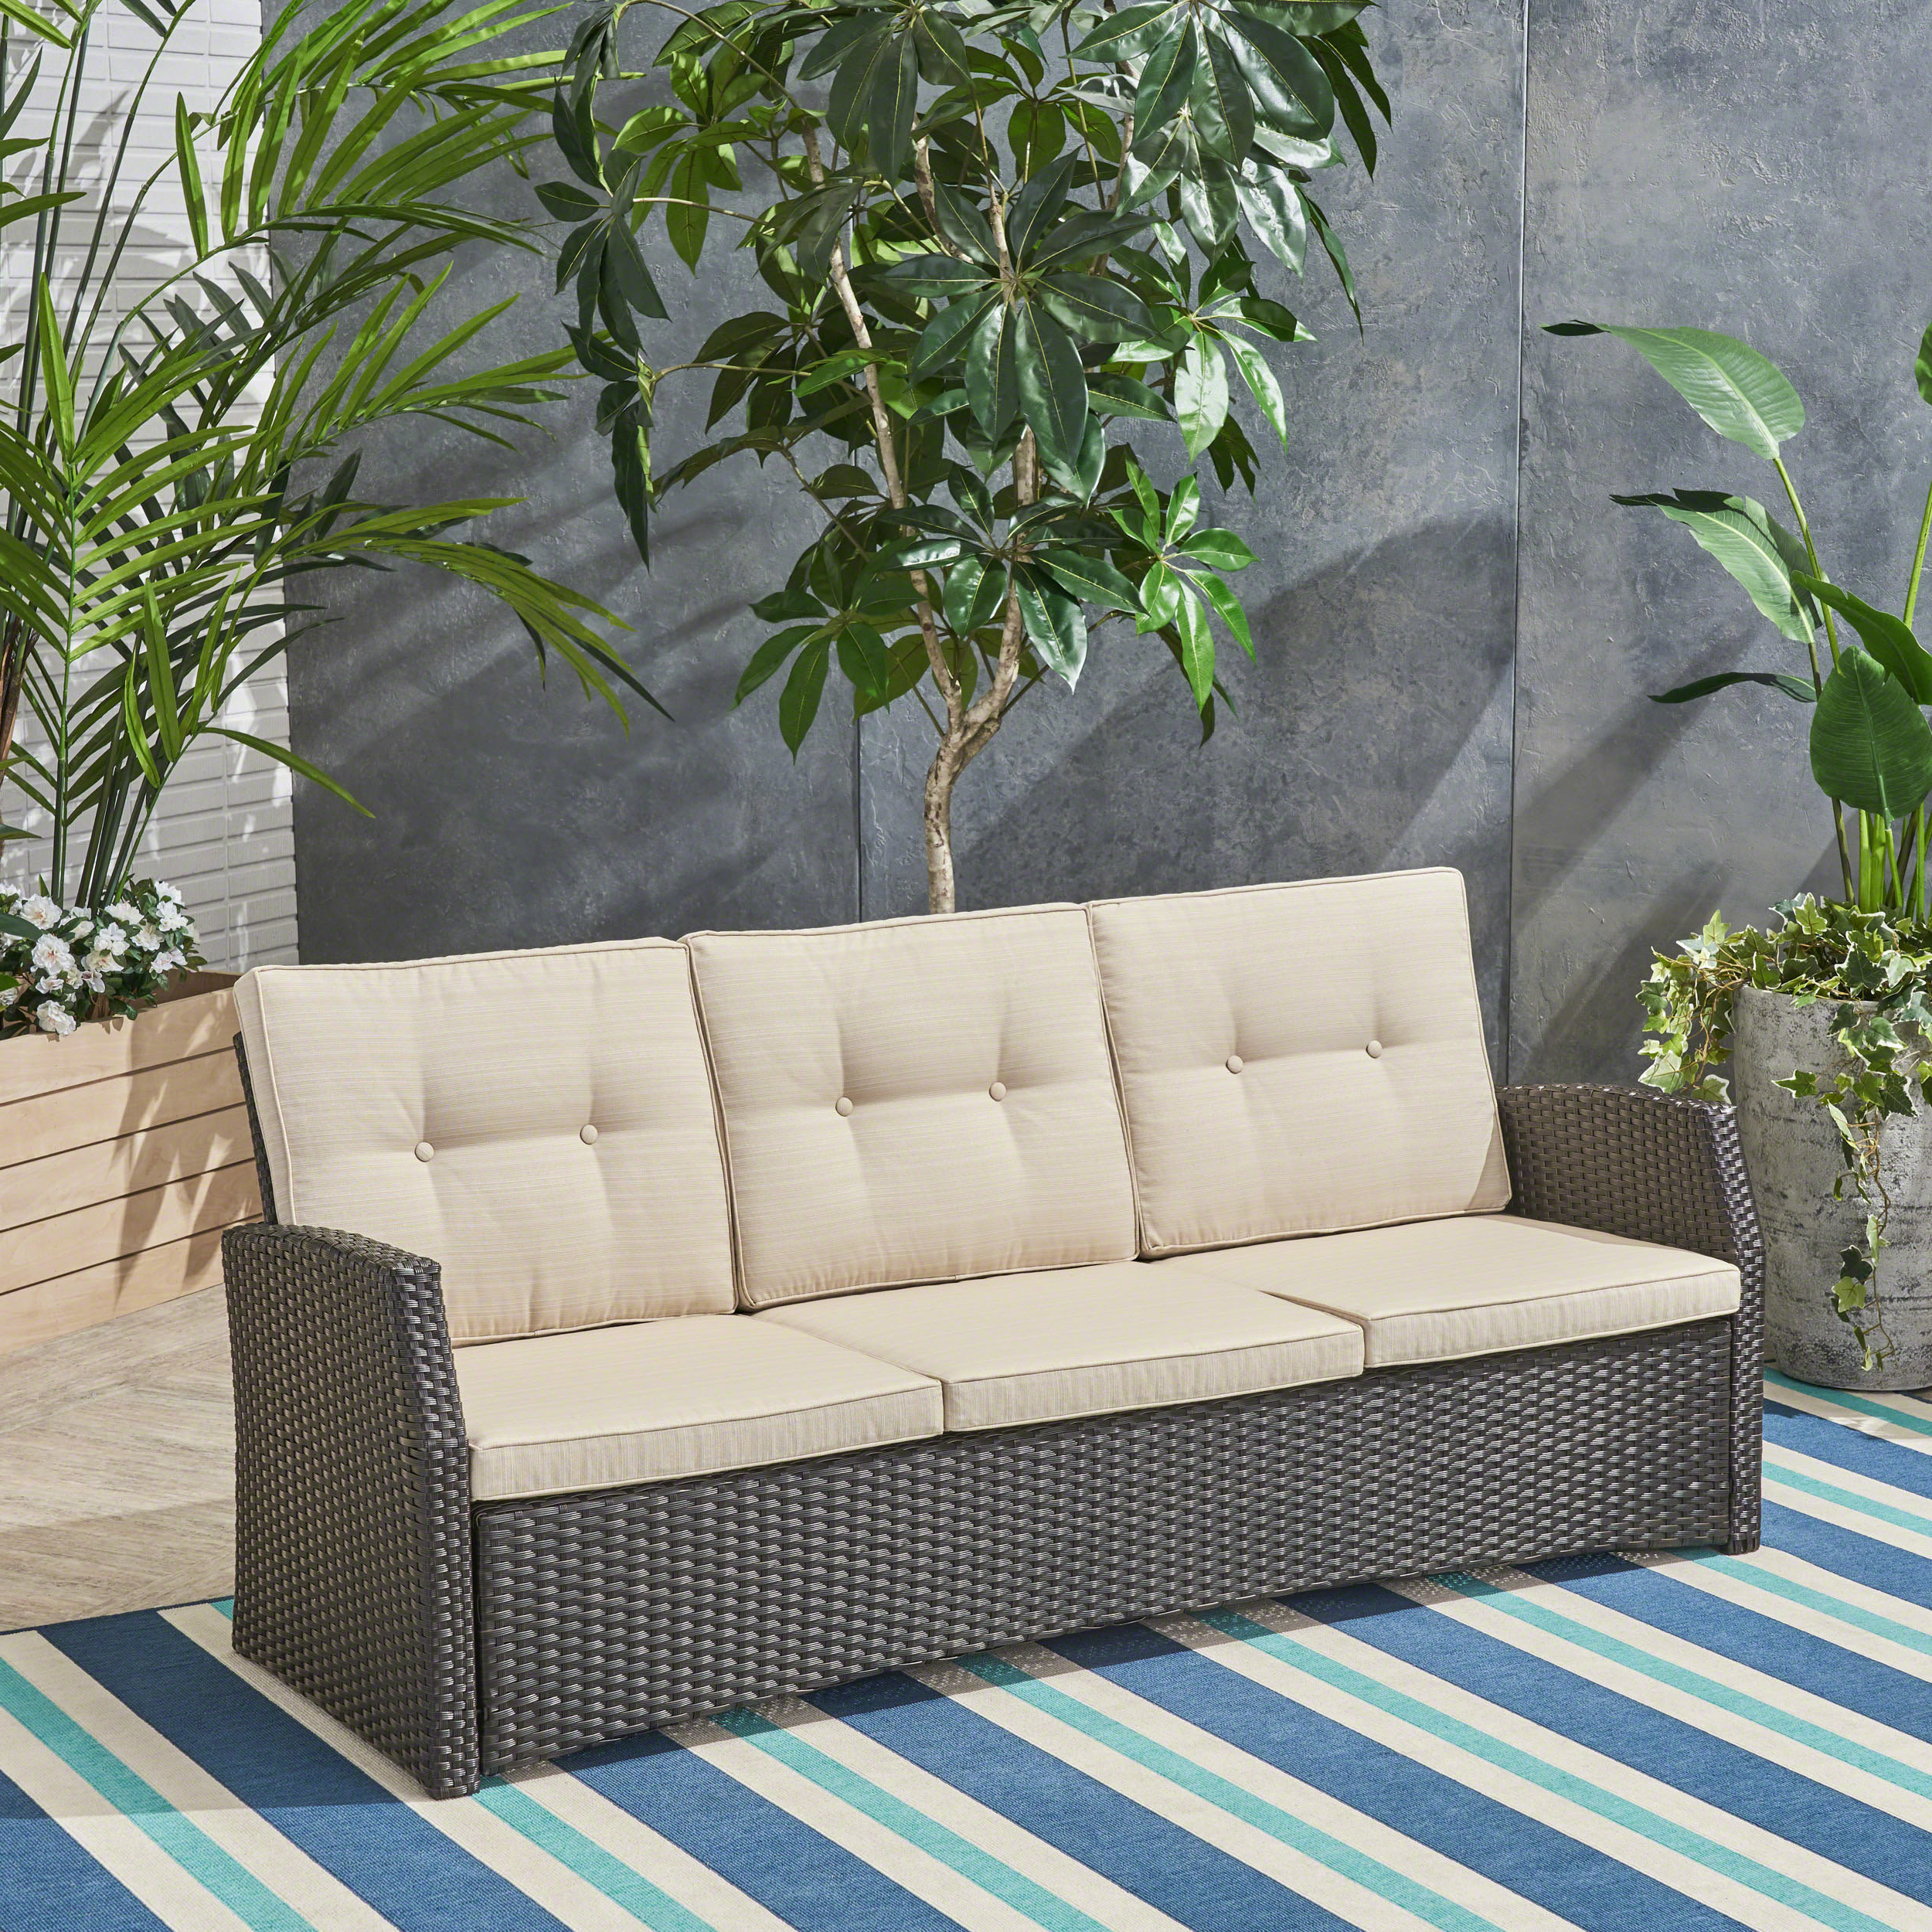 2020 Loganville Patio Sofa With Cushions In Silloth Patio Sofas With Cushions (View 1 of 20)